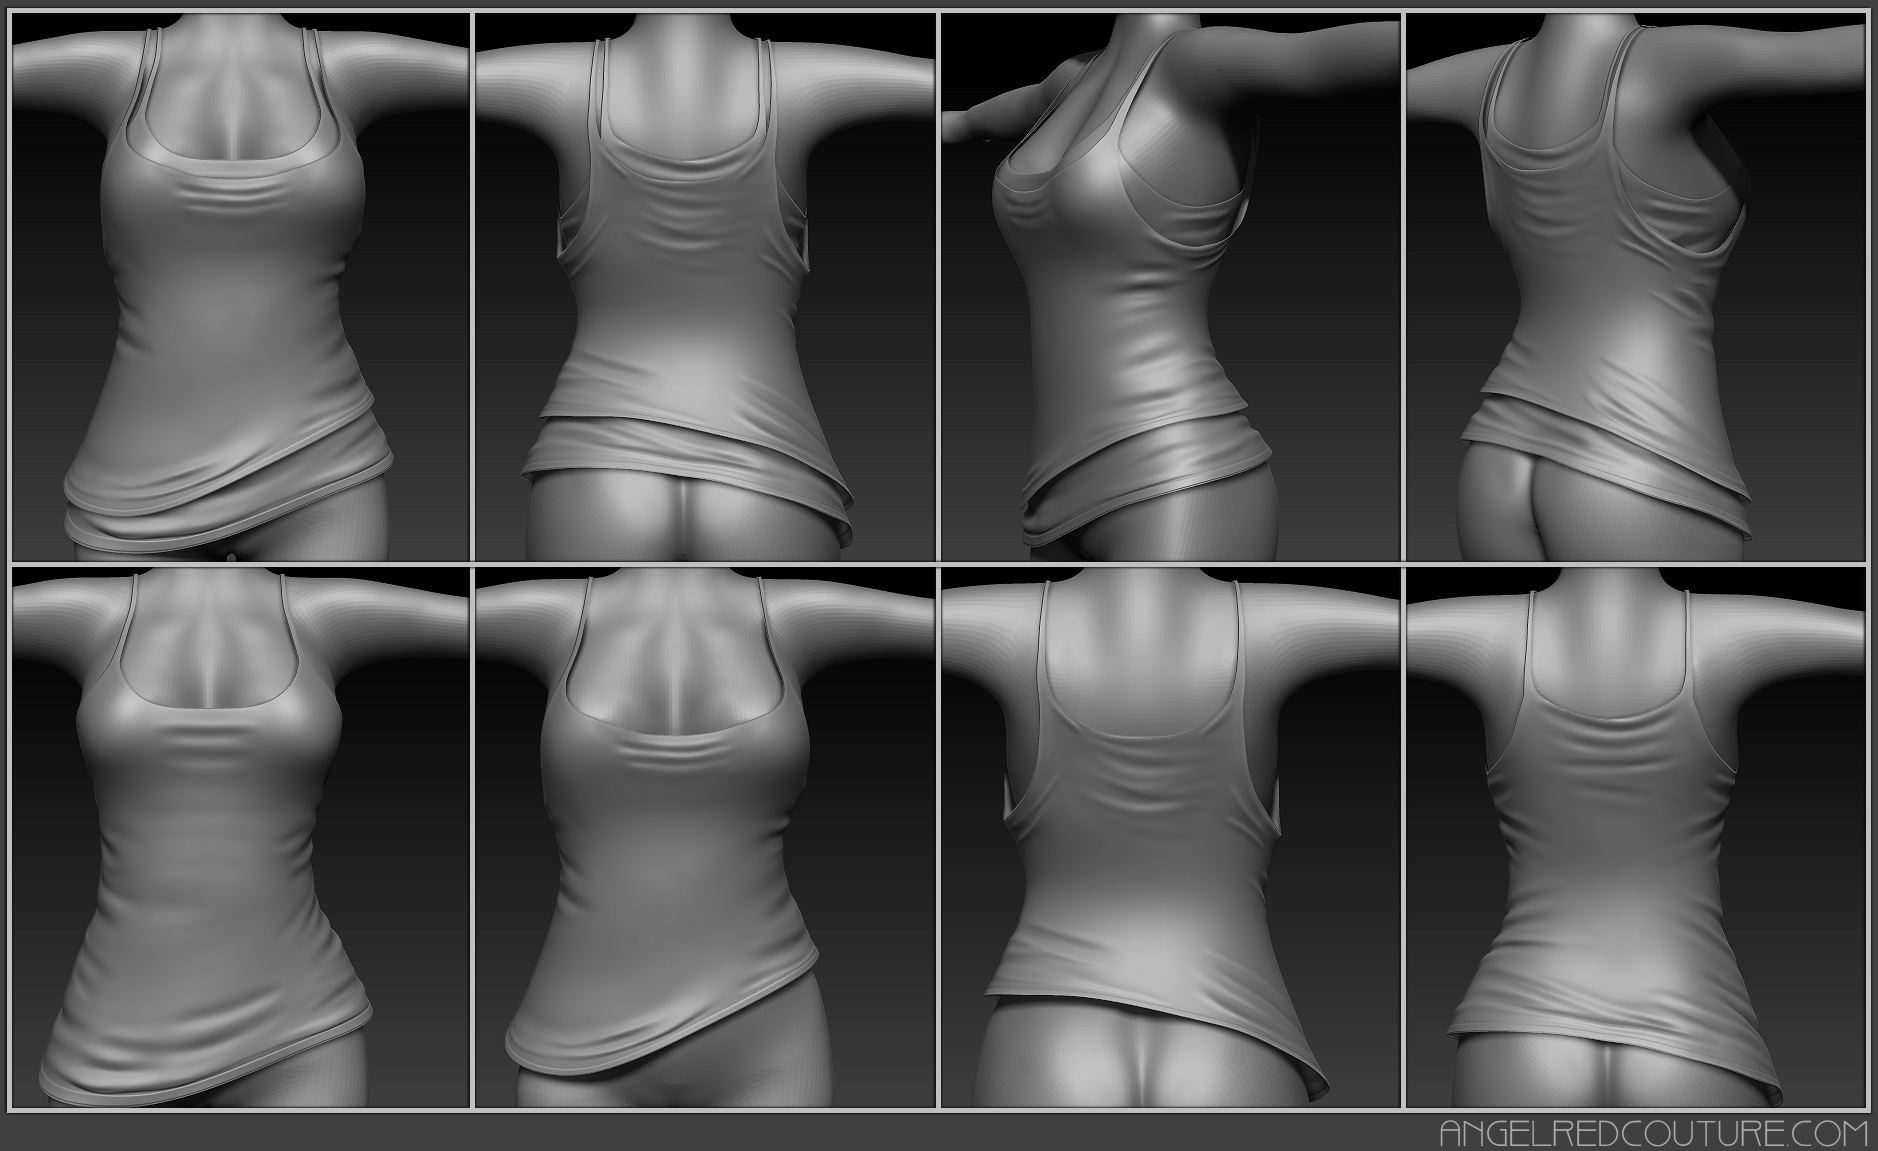 Zbrush With Crack Mesh Preview